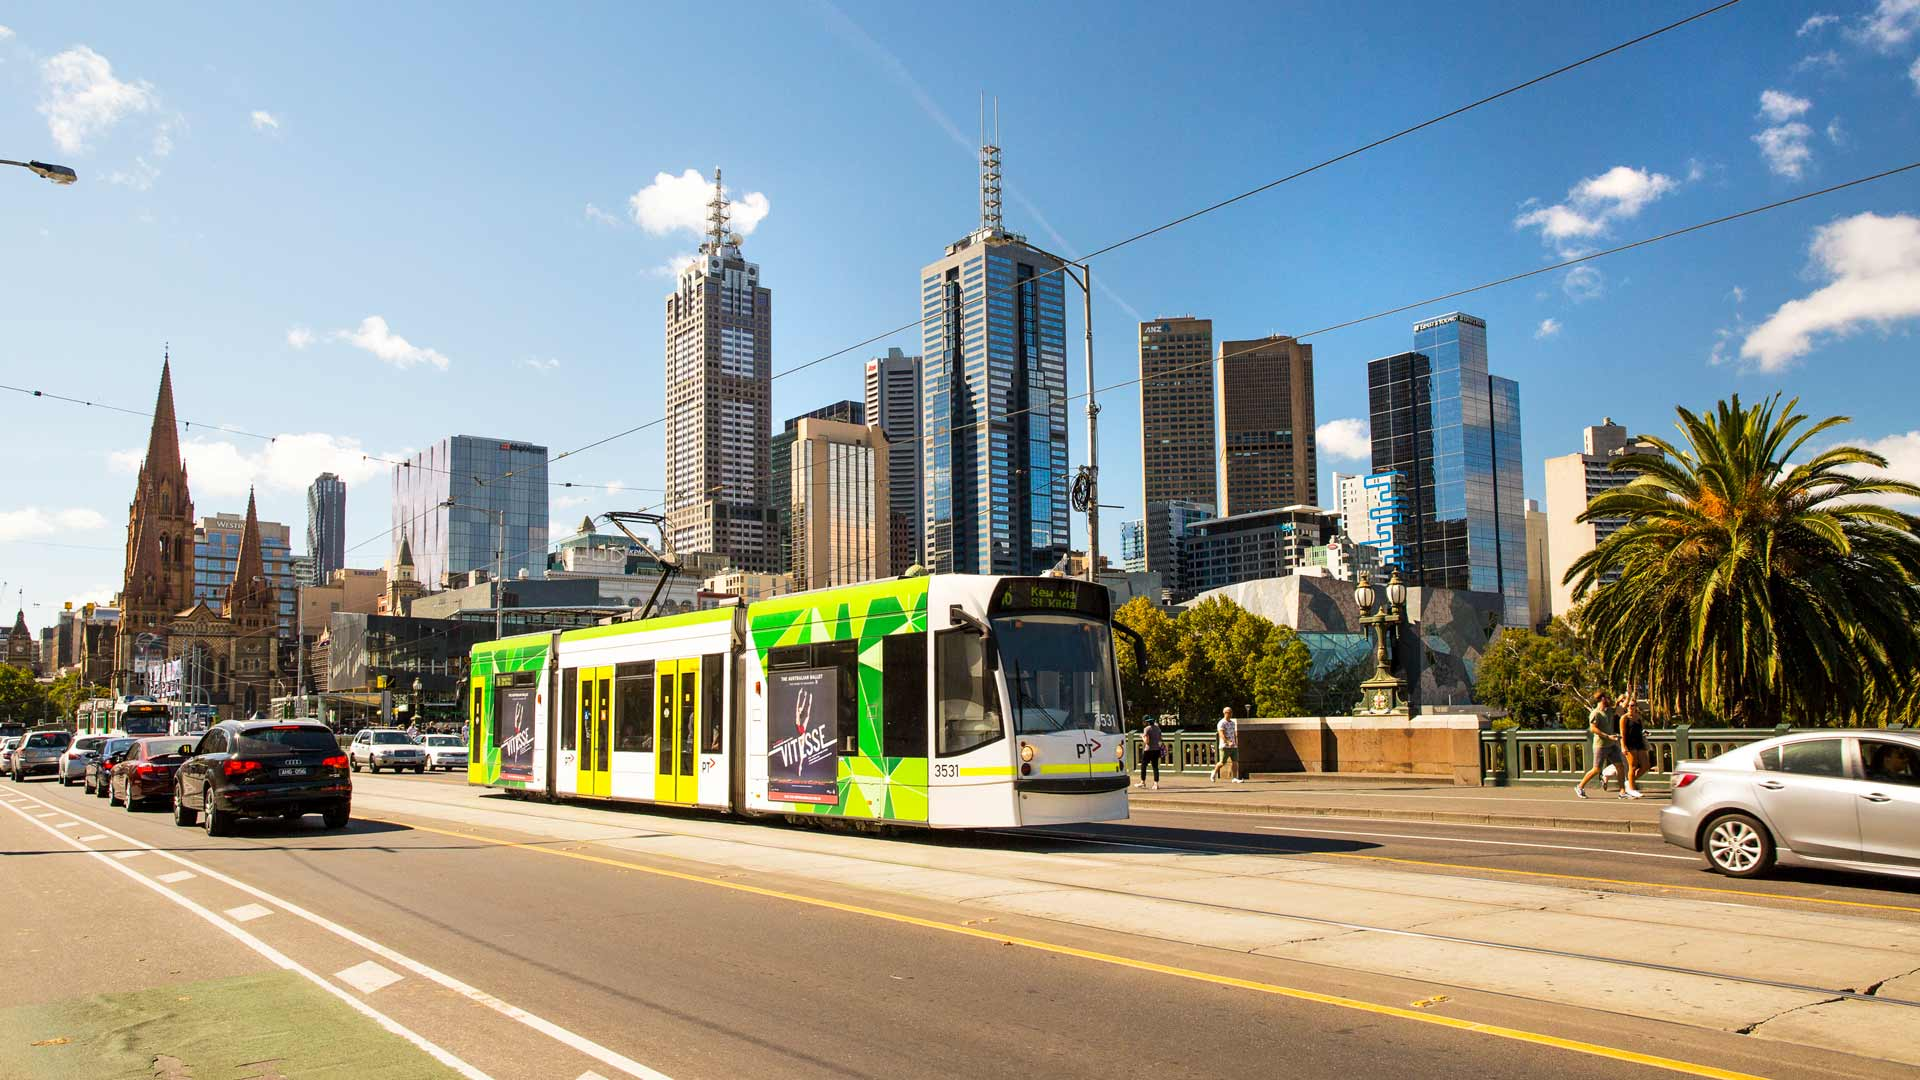 Melbourne's Tram Network Is Gearing Up for Another Two Days of Strikes